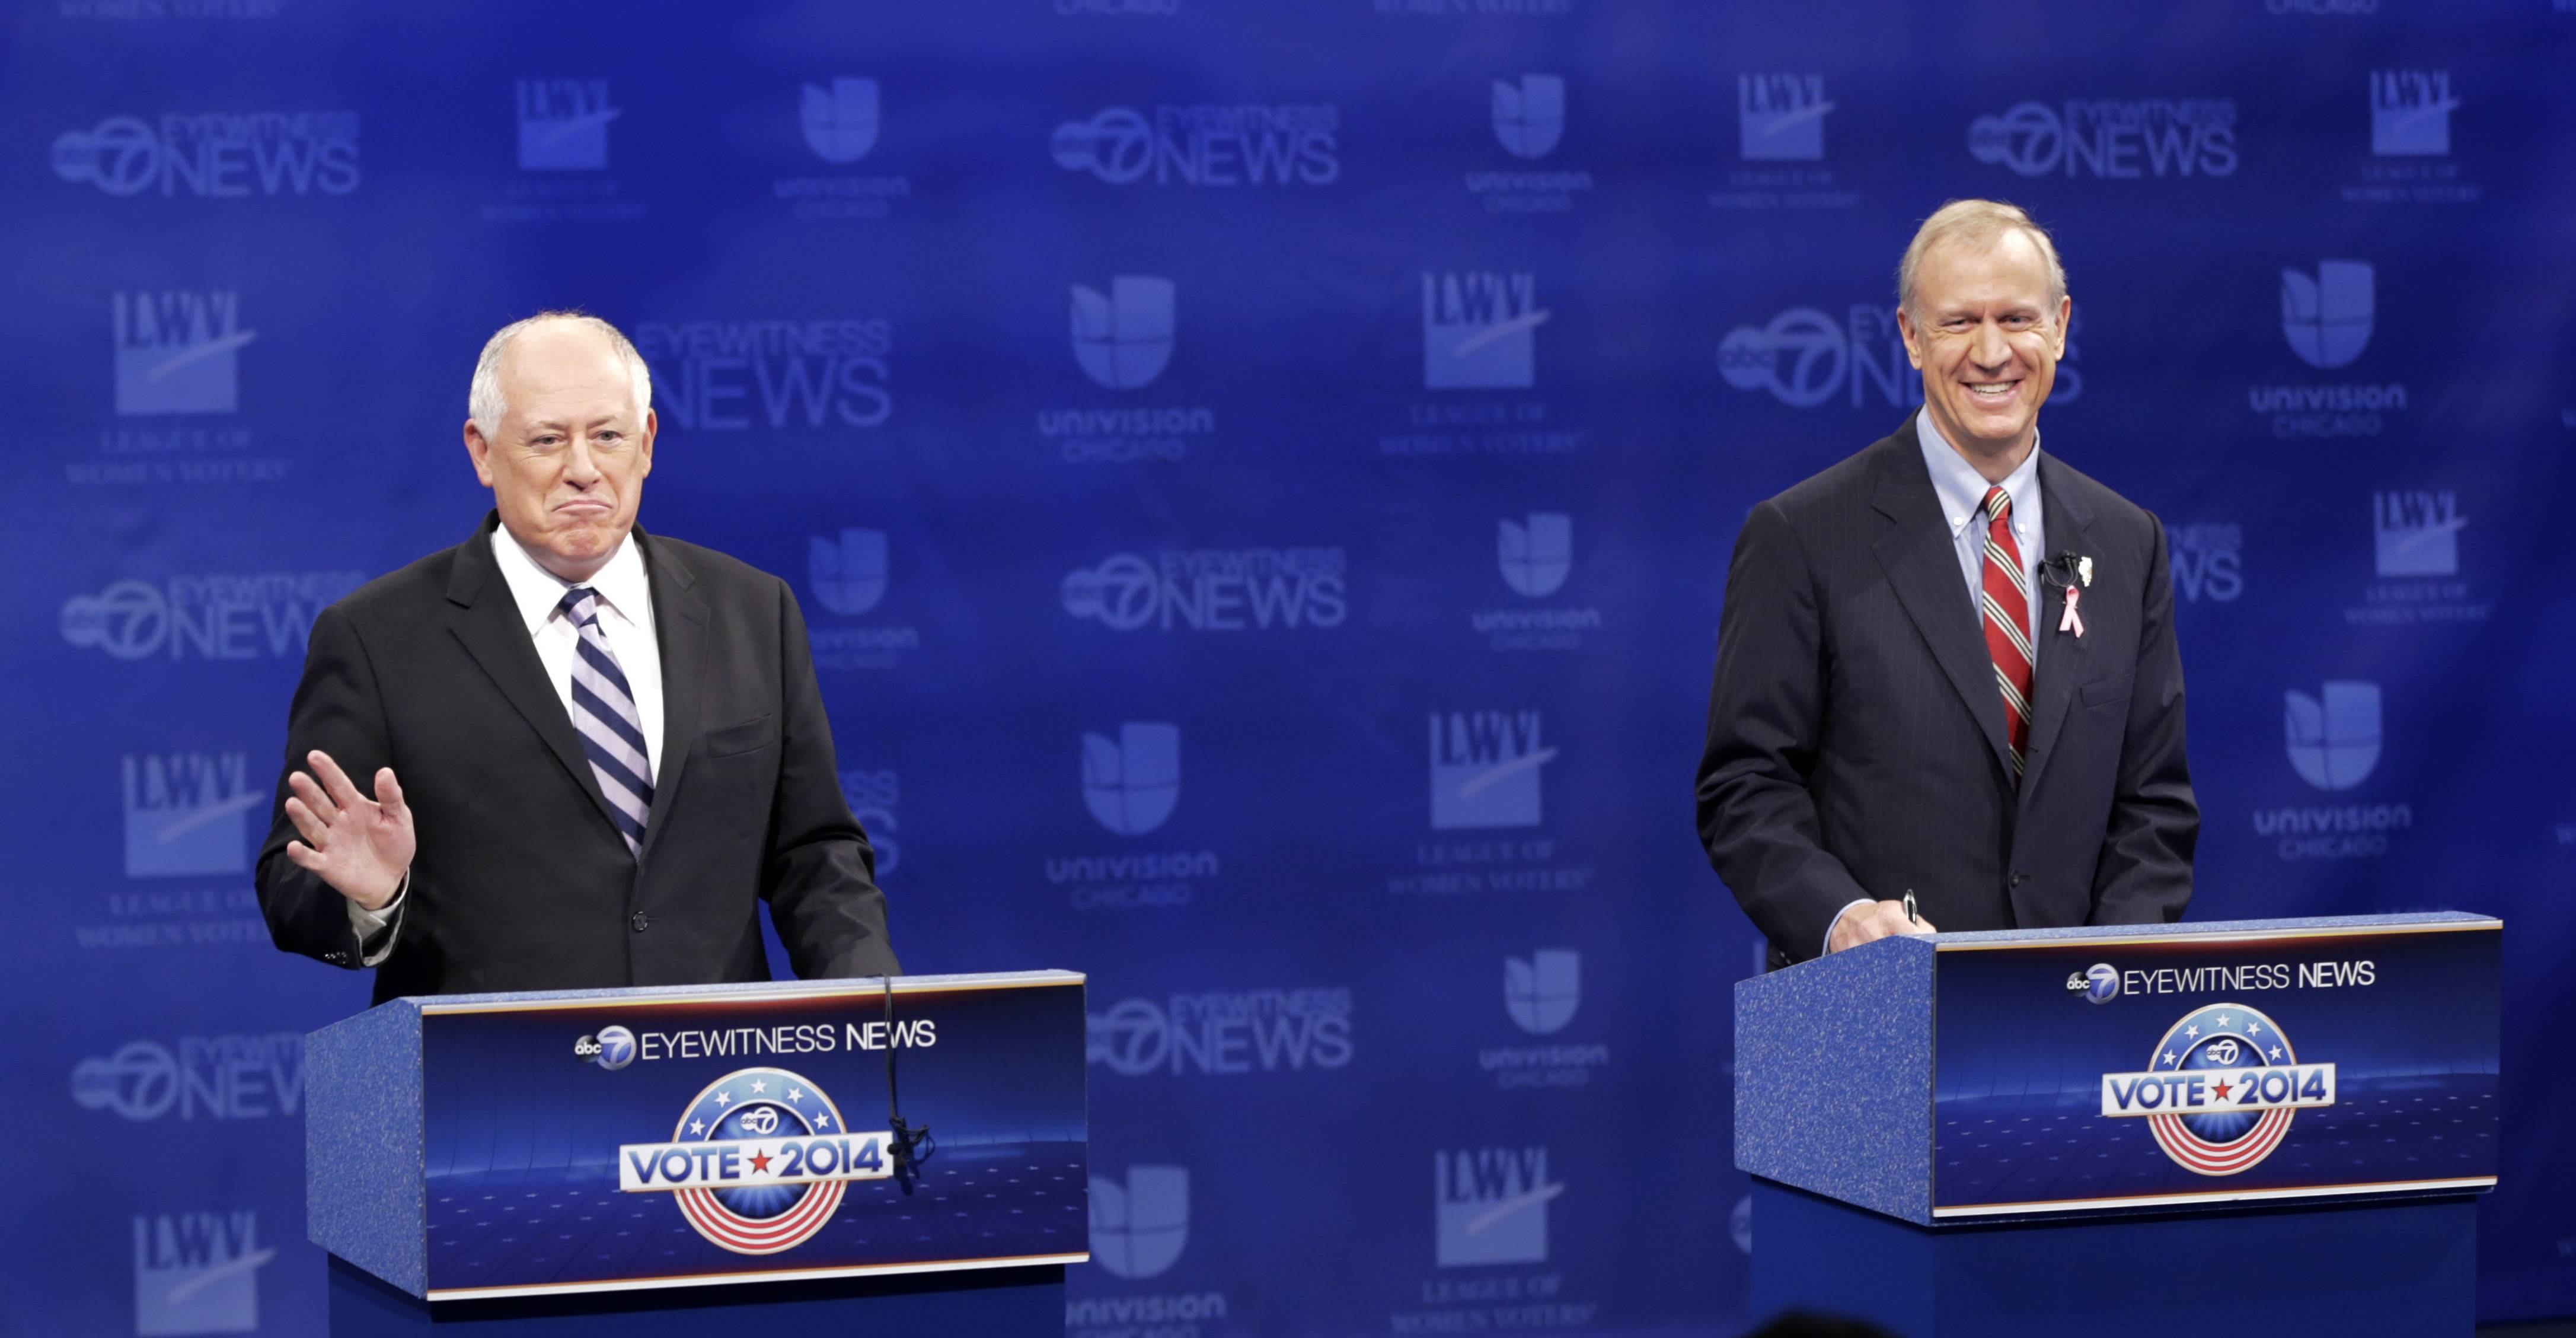 Democratic Gov. Pat Quinn, left, and Republican challenger Bruce Rauner were able to criticize each other and smile about it in their third and final debate Monday night.